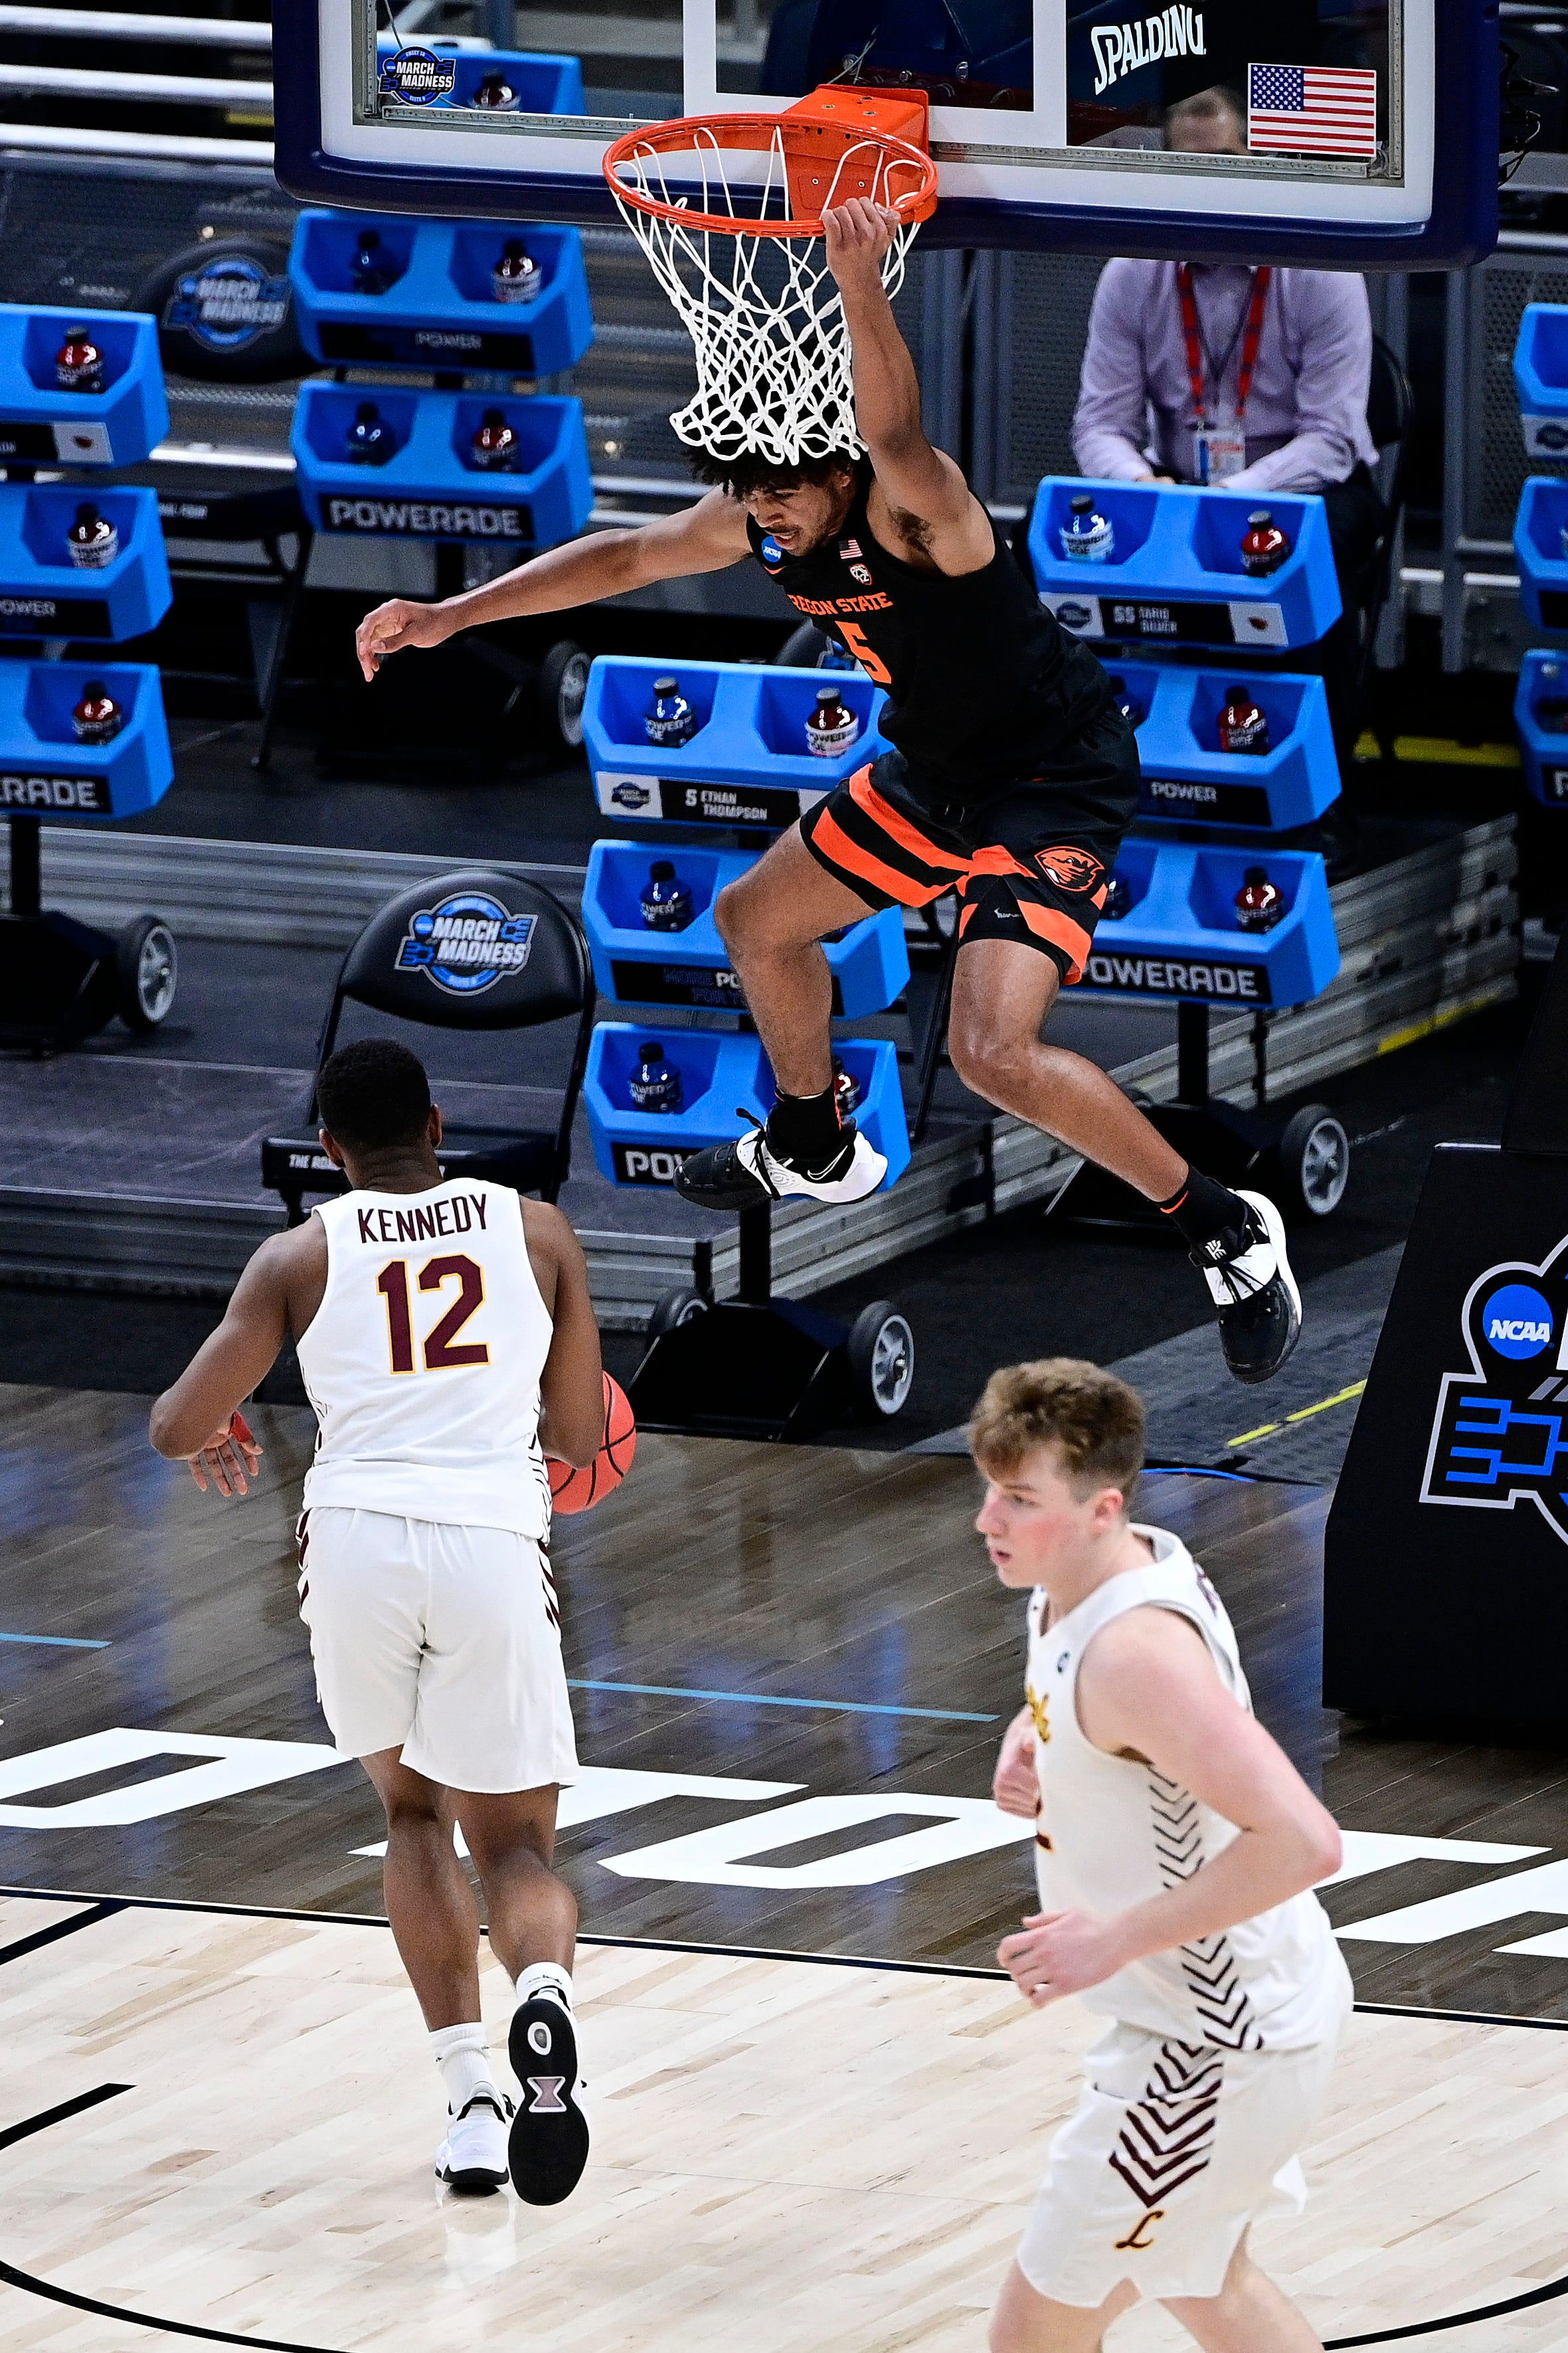 Elite Eight or sent packing: Winners and losers from the men s NCAA Tournament Sweet 16